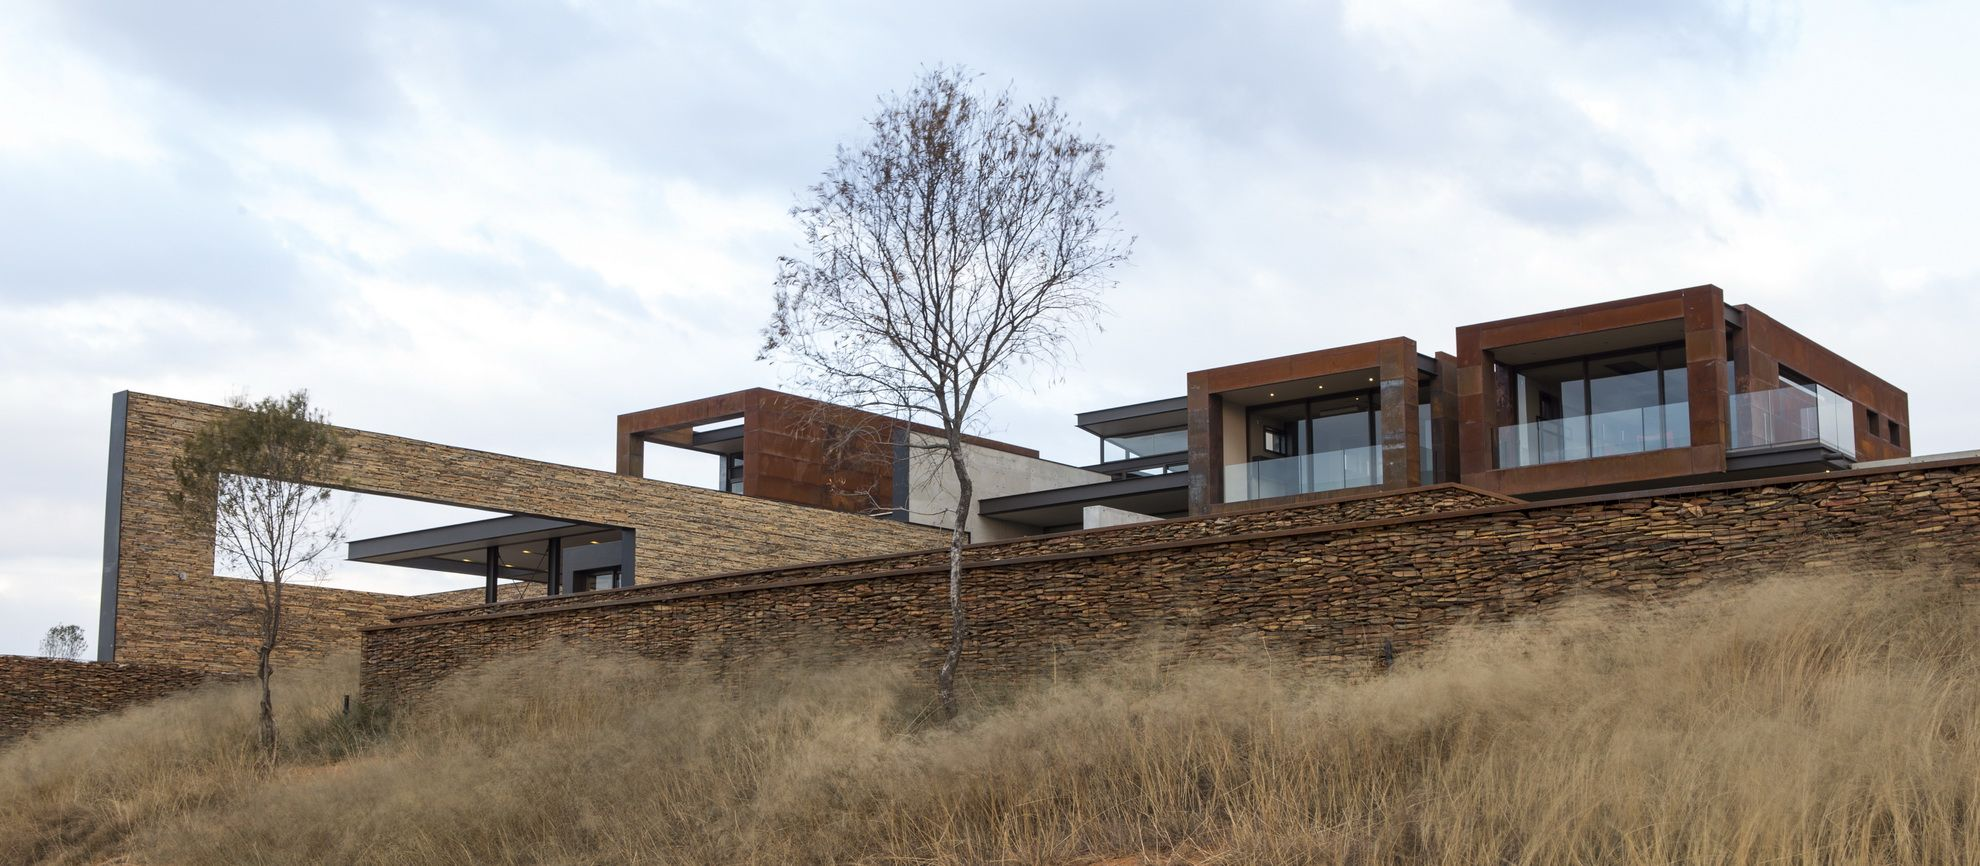 decor house 2 pretty design decor house lam nico van der meulen decor house House Boz | Outside | Nico van der Meulen Architects #Design #Landscape  #RustedSteel #Architecture